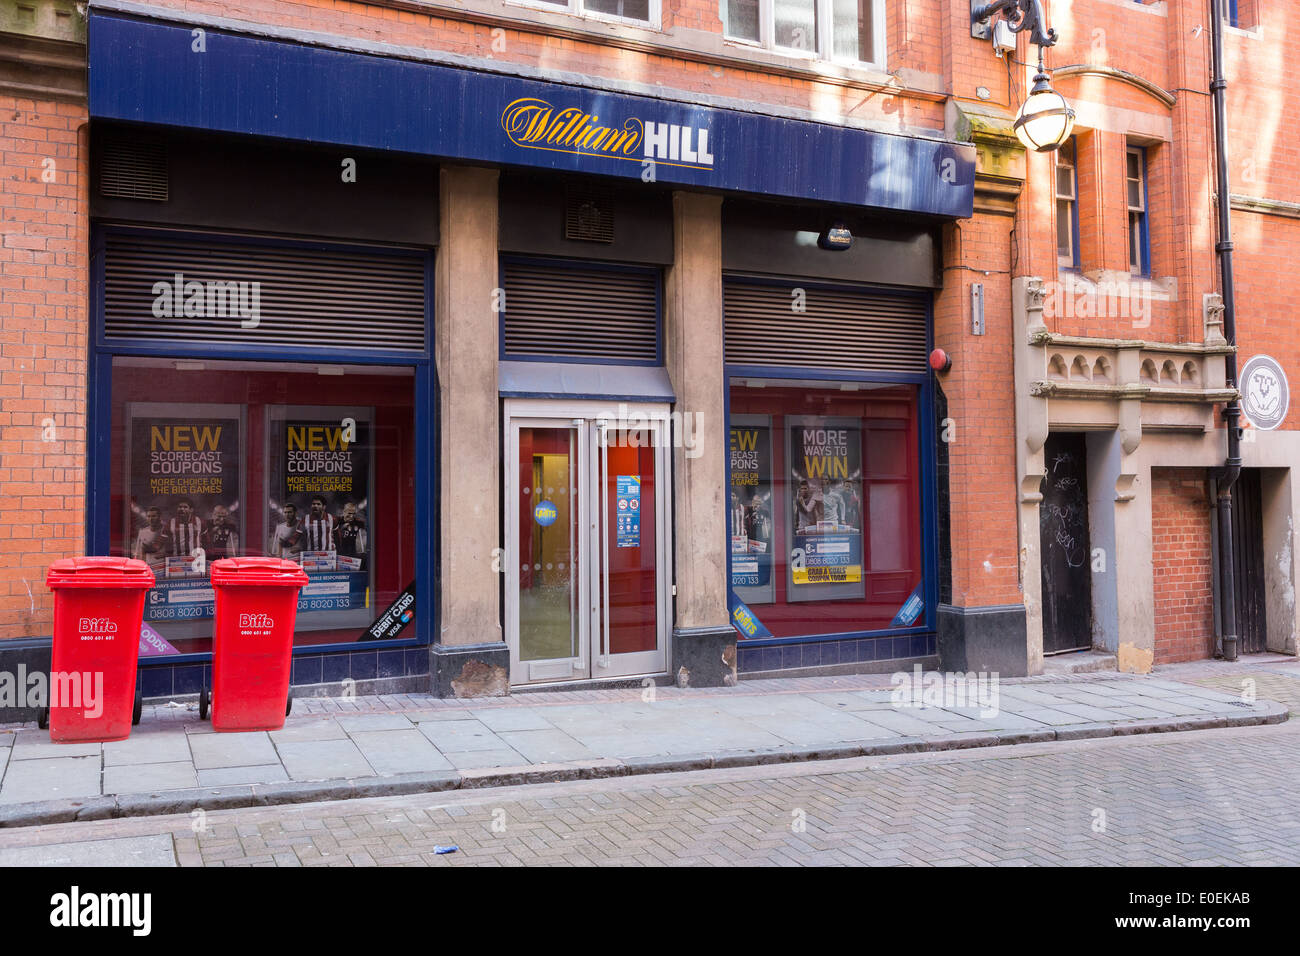 The front of a William Hill betting shop - Stock Image